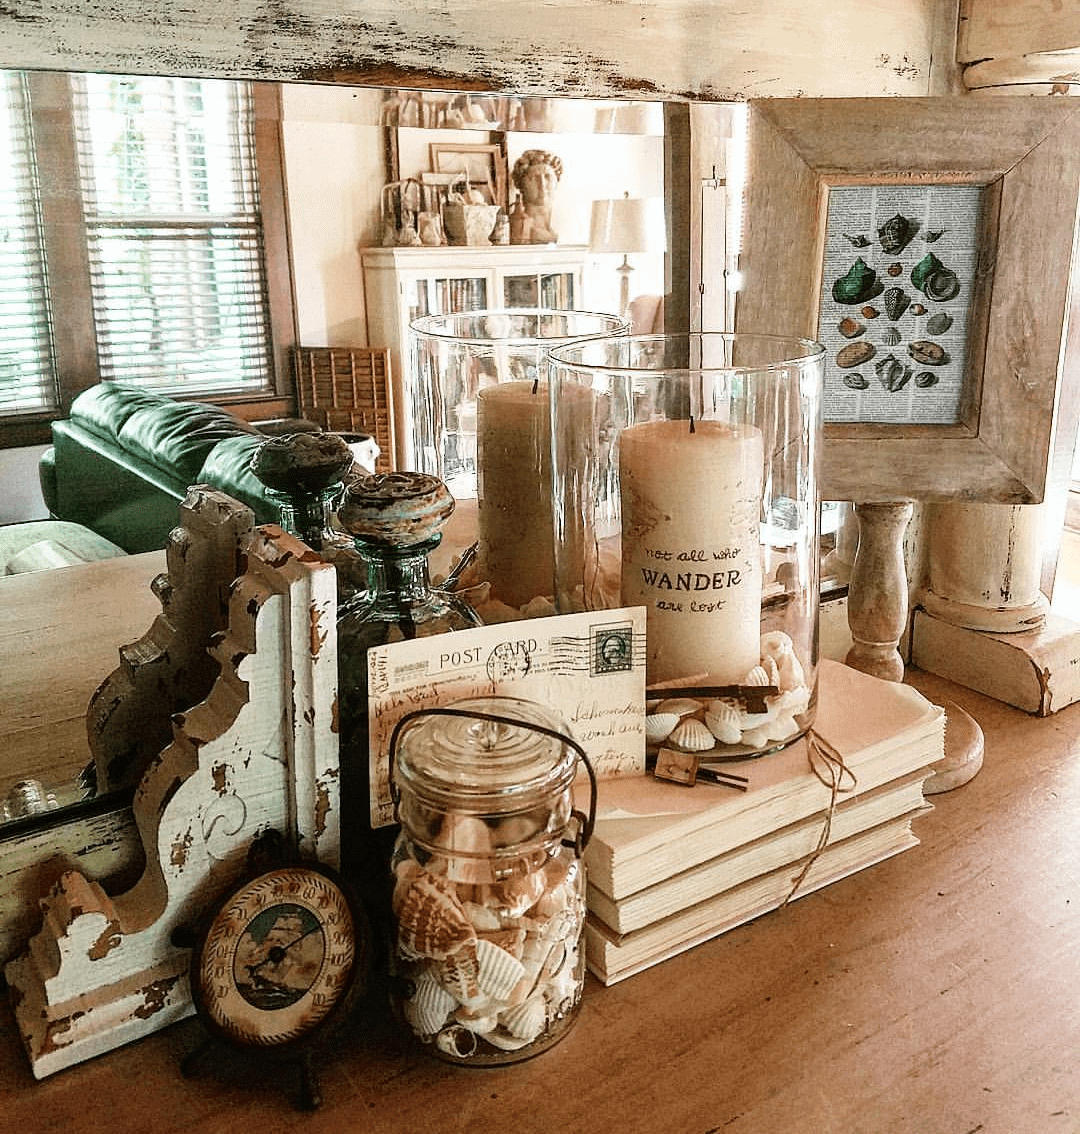 wood surface with coastal decor and elements